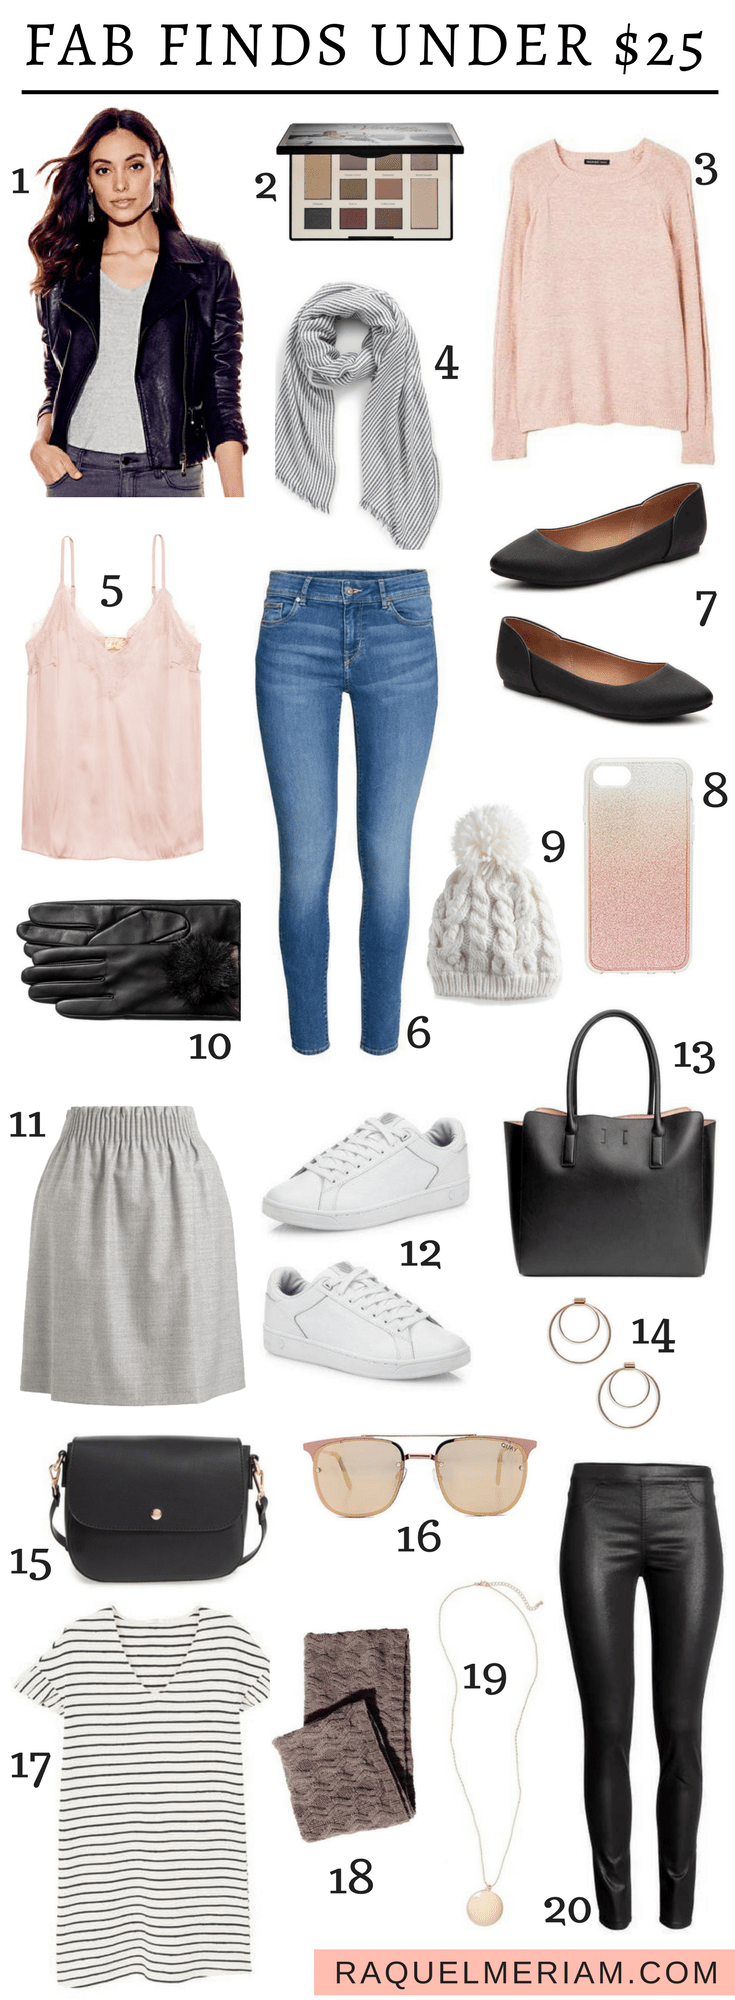 Fab Finds Under $25 - The best deals for this time of year. #winter #outfits #fashion #sales #deals